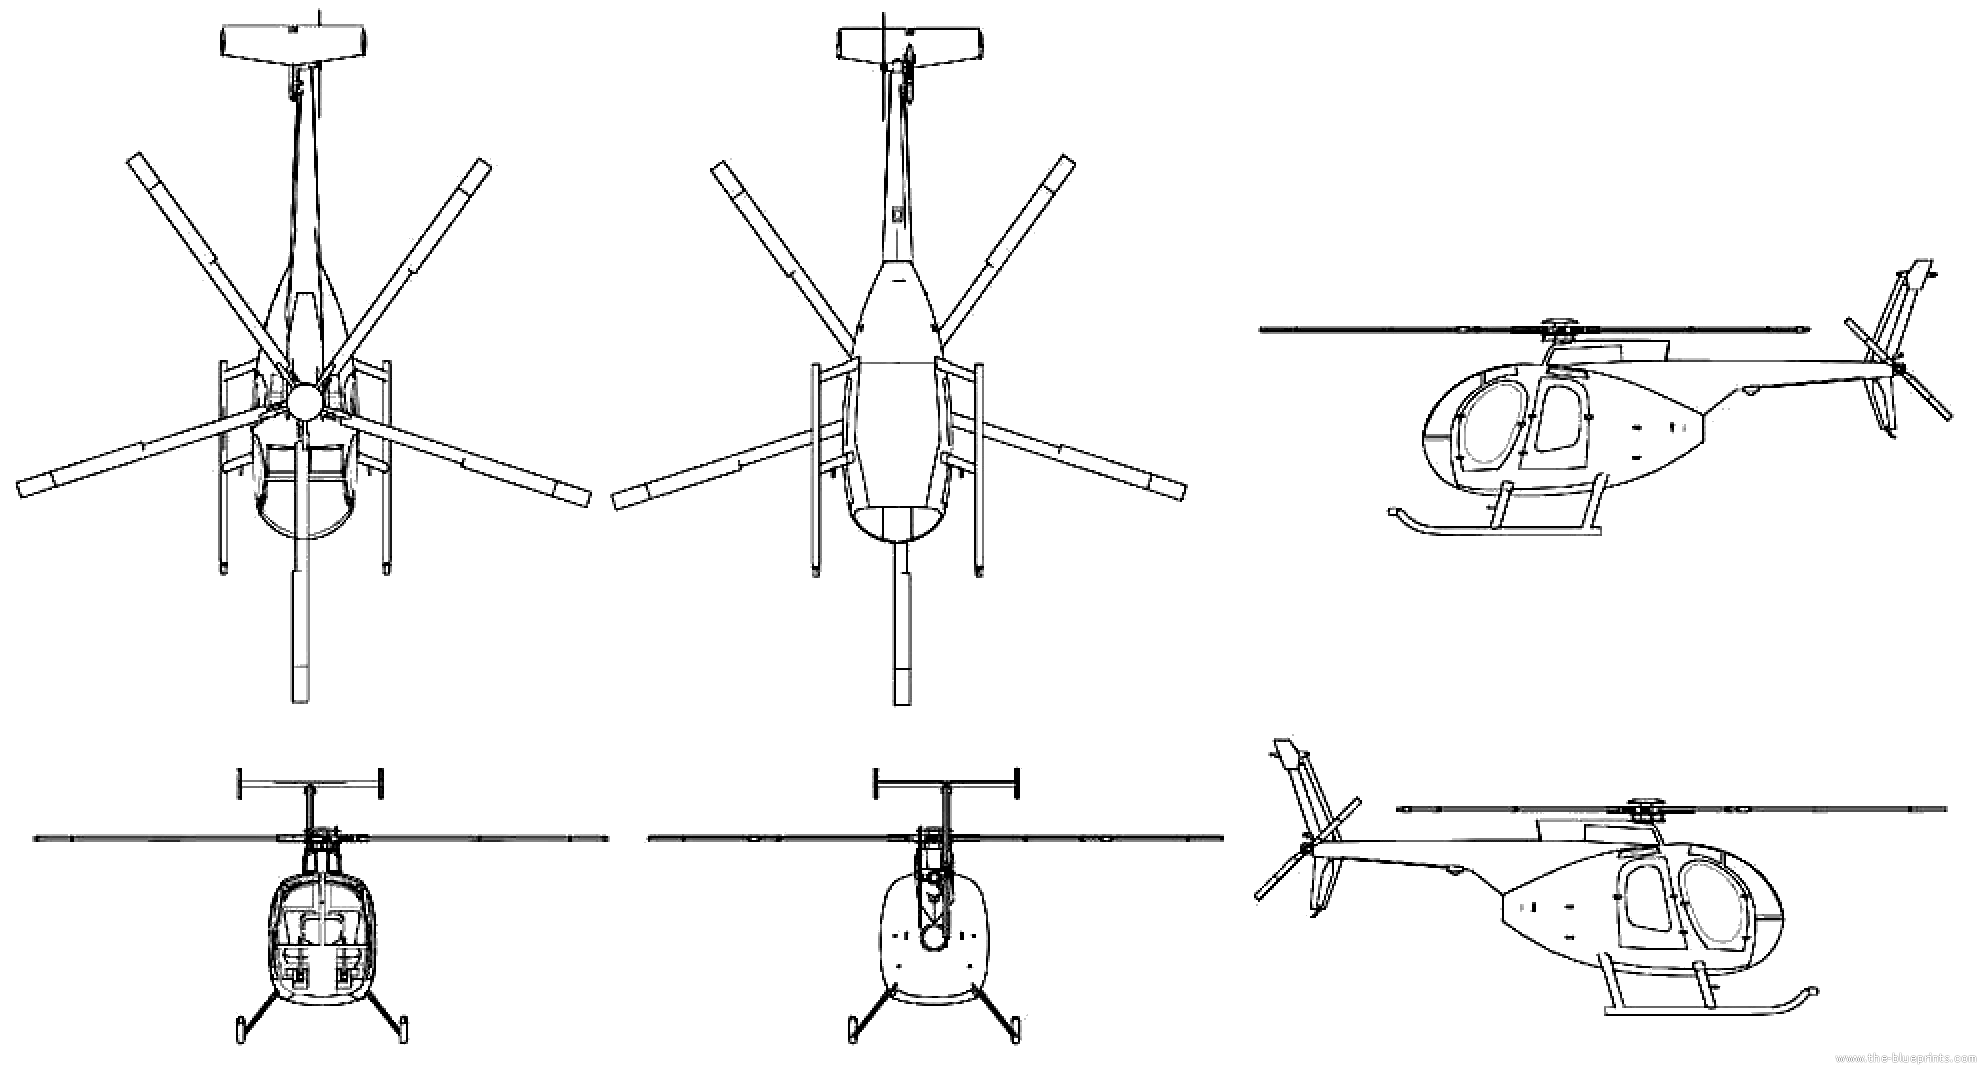 hughes helicopter for sale with Hughes 500d on Showthread additionally Home Built Aircraft Plans additionally 726f168d64ecd7d684ed84fb16539157 besides Light And Small Helicopter  petitors likewise Diagram Of The Ear For Kids.